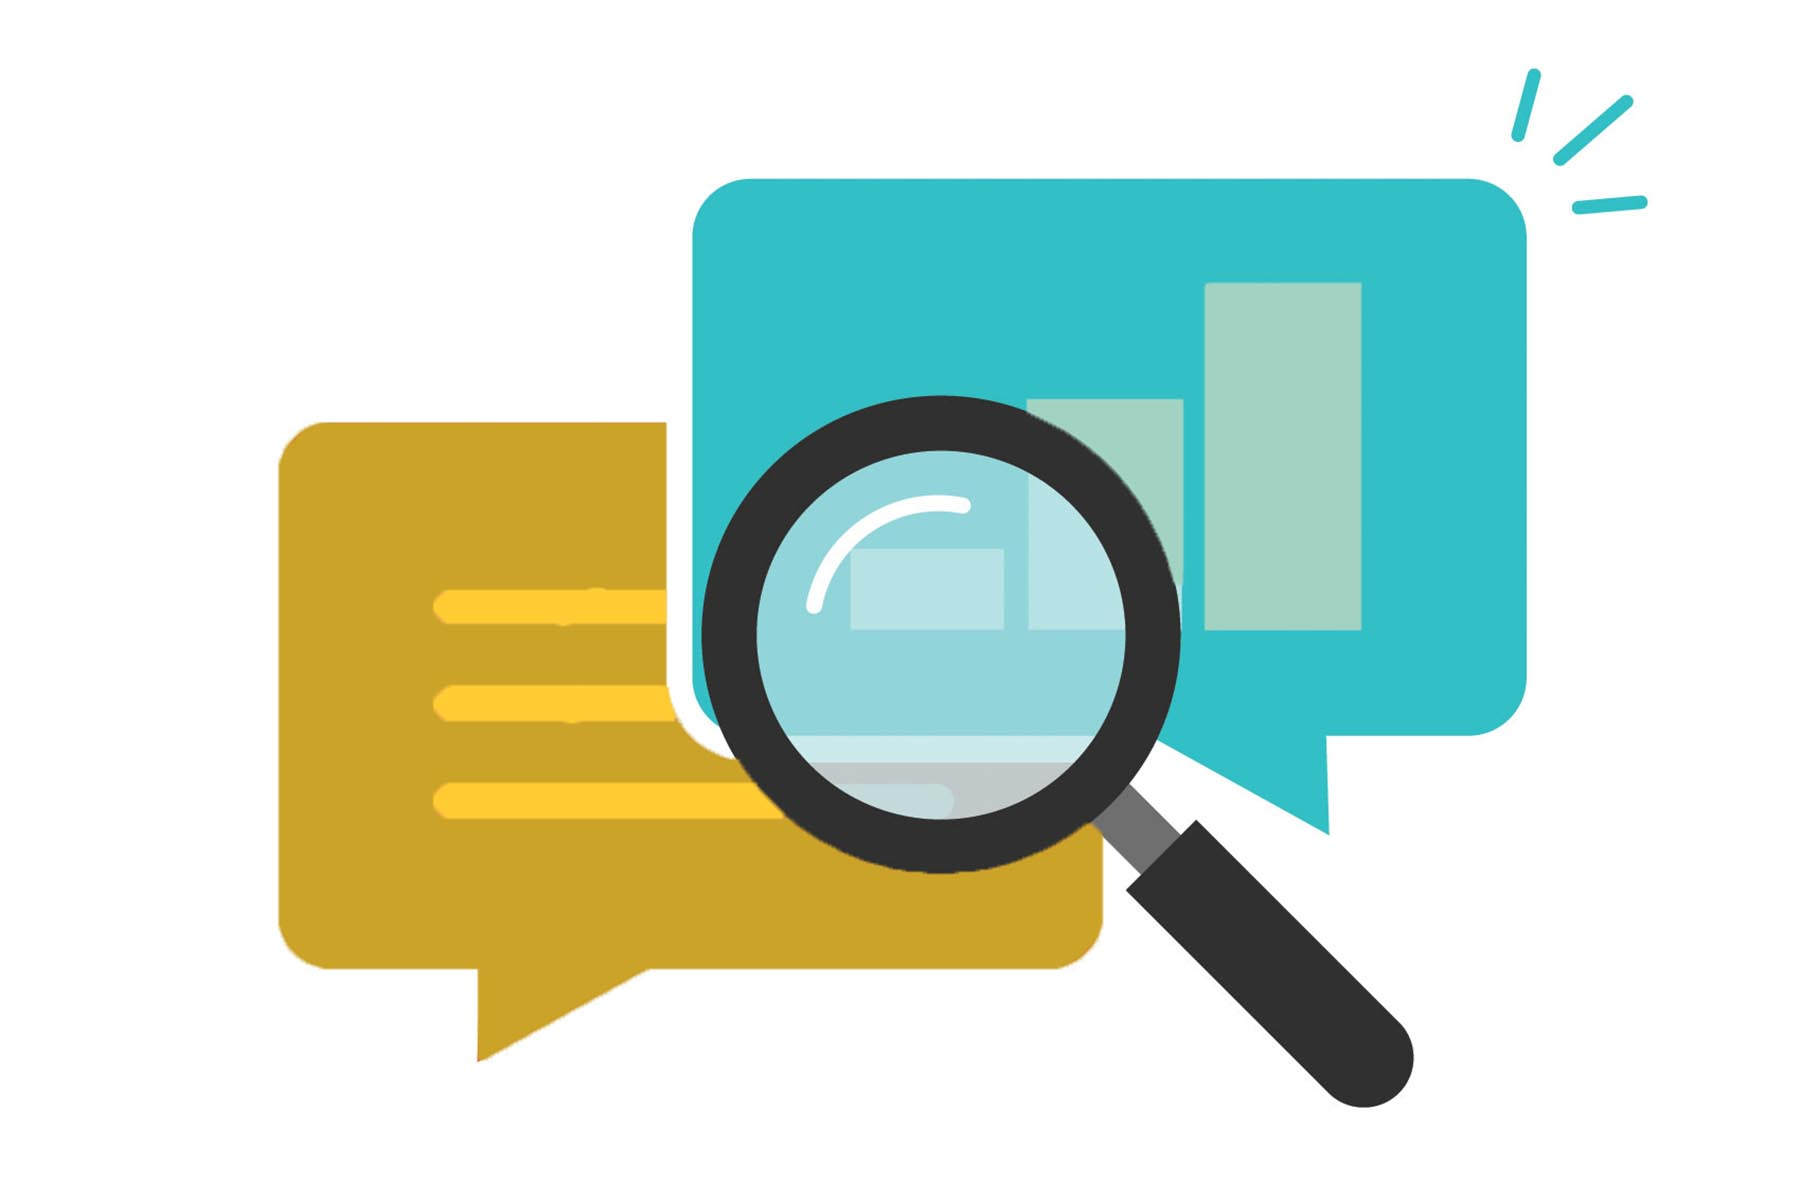 SEO symbol illustration - magnifying glass, speech bubble containg graphs and data